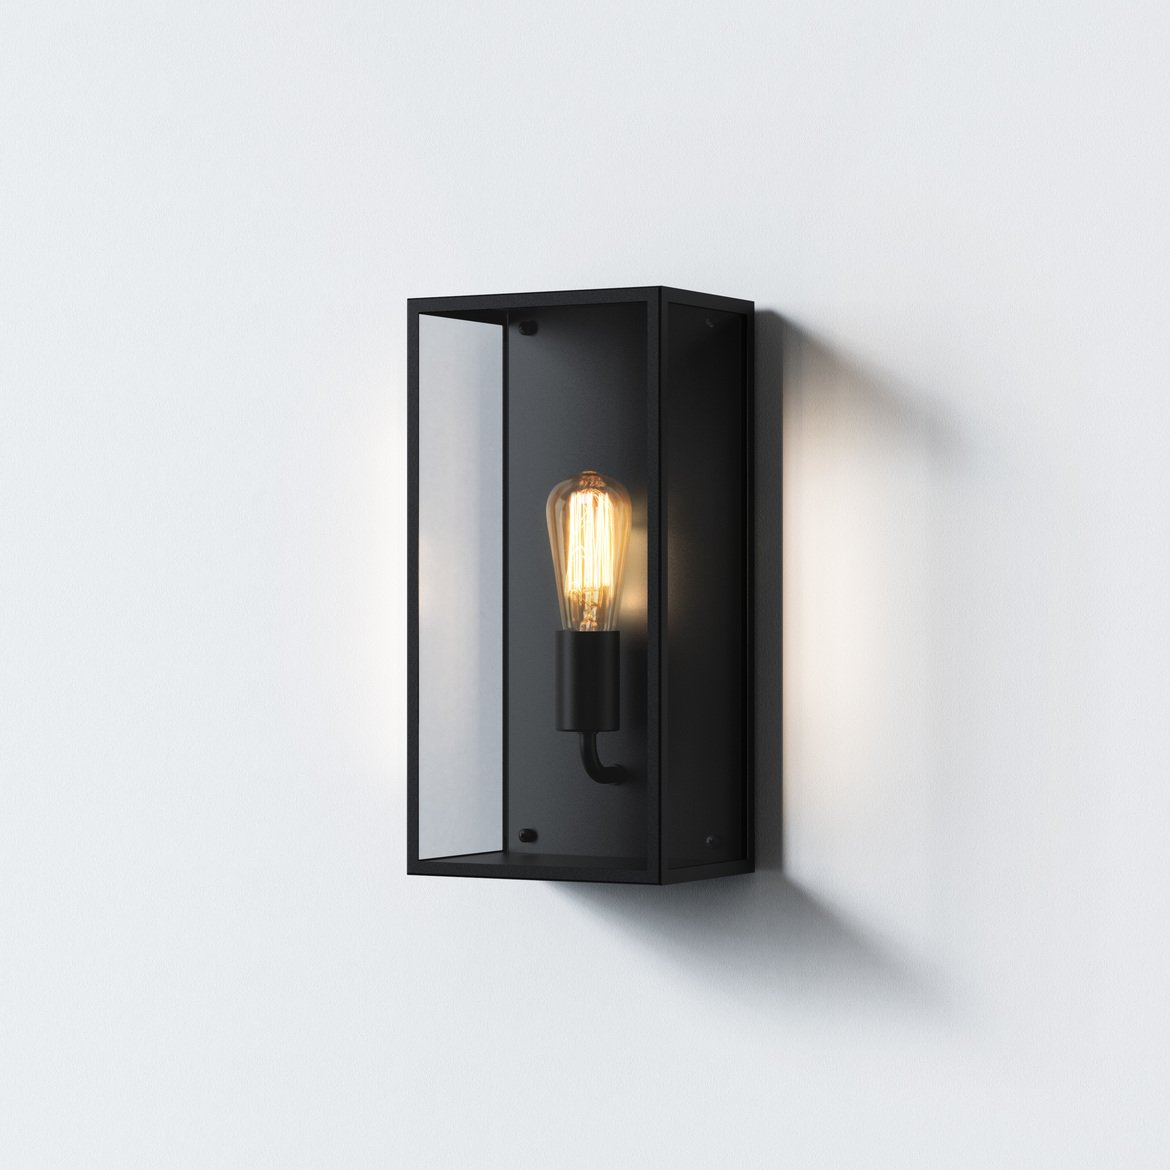 Astro Lighting 1183028 Messina 200 Textured Black Wall Light